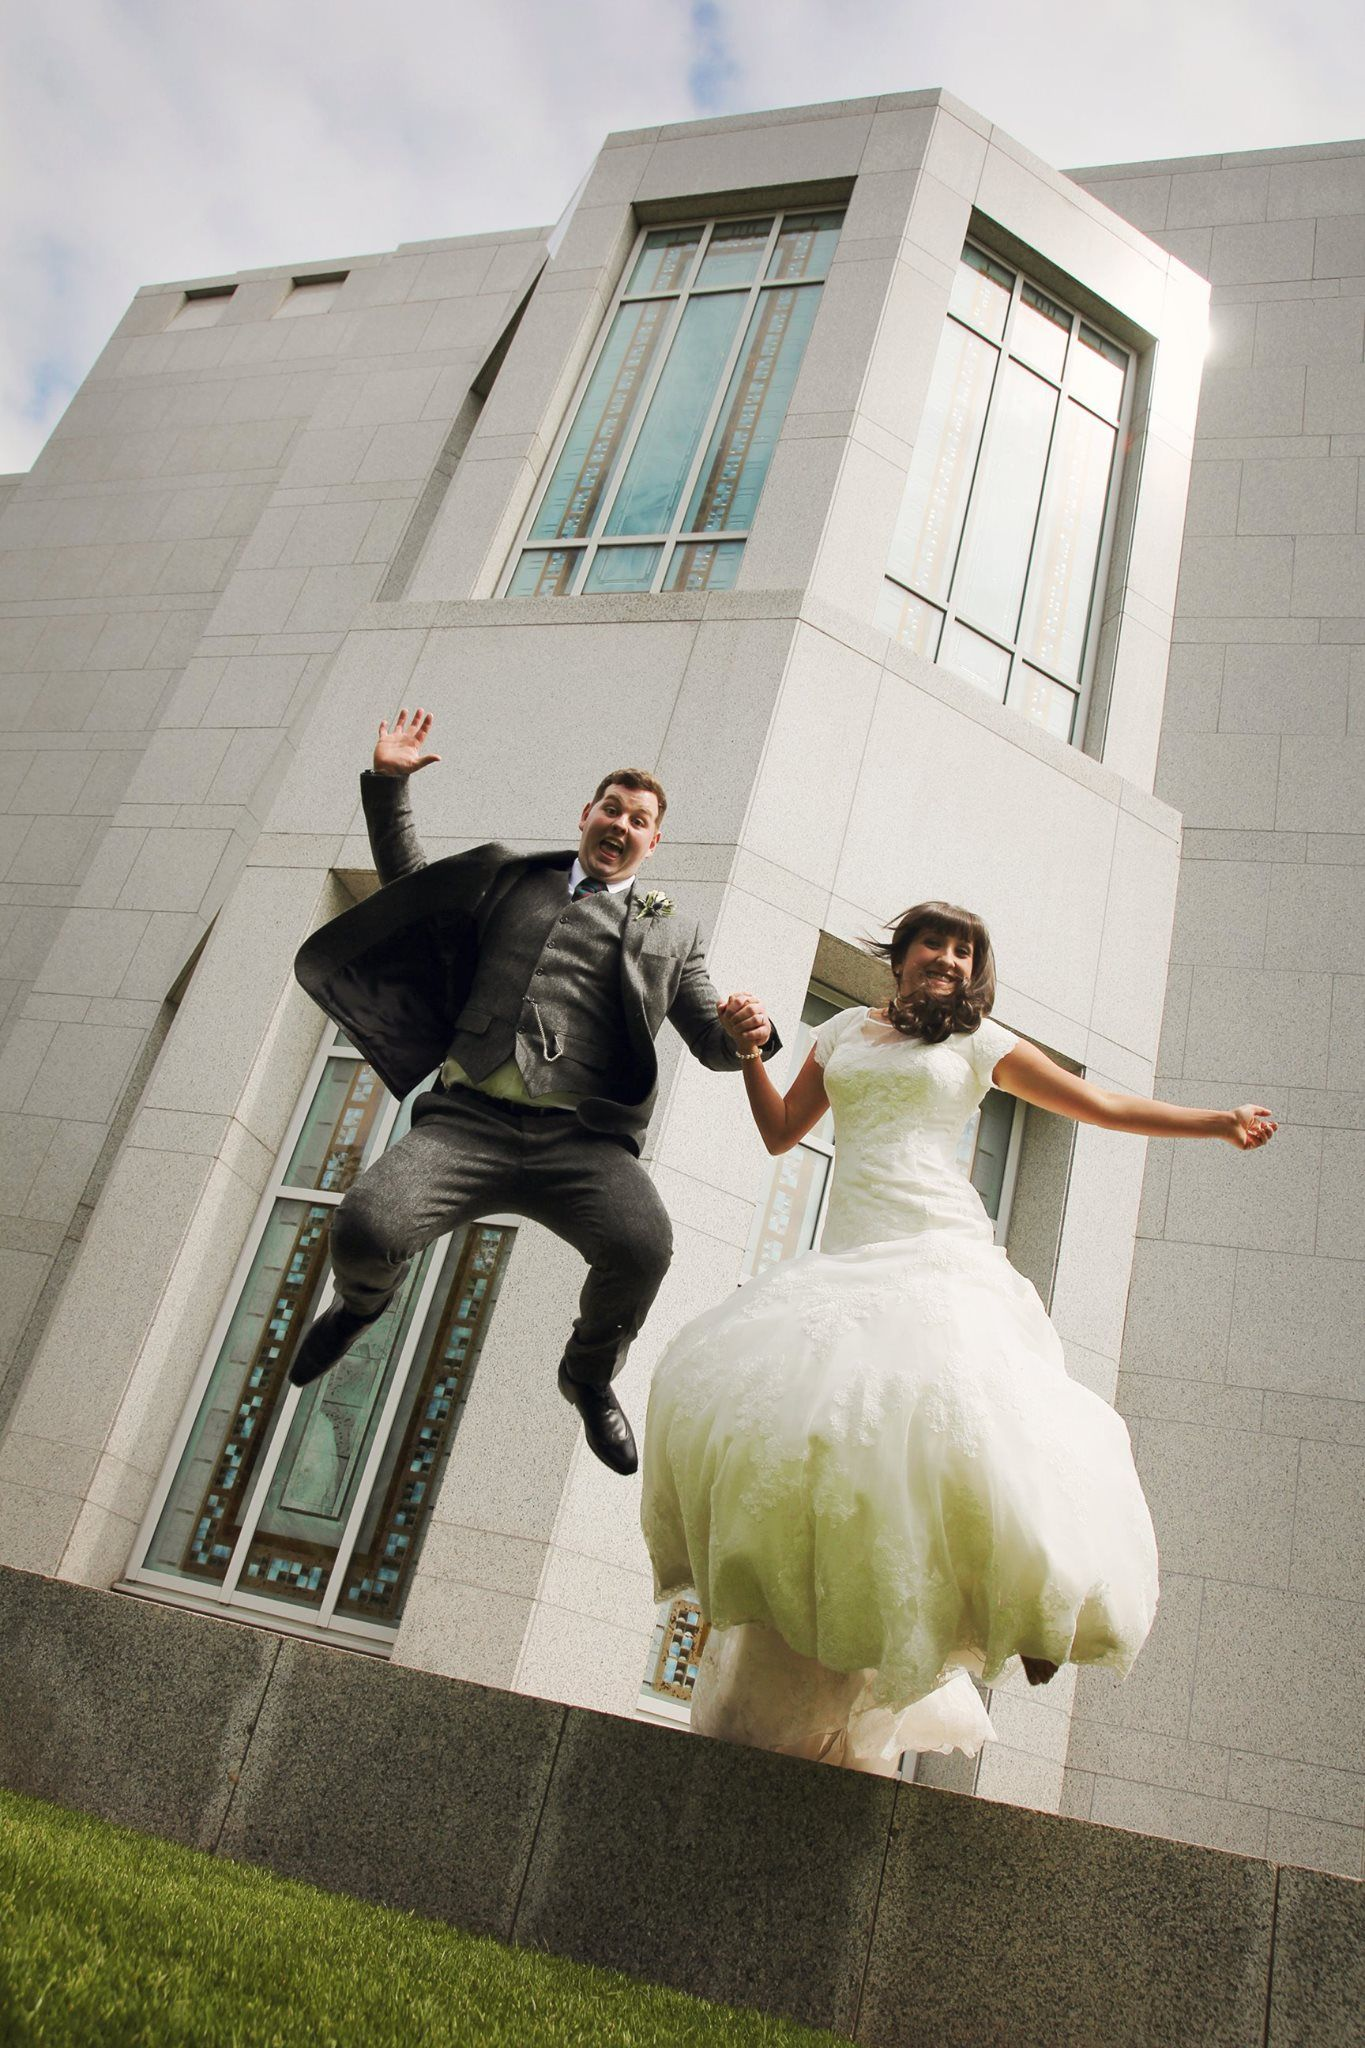 Jumping for joy at Preston Temple! #wedding #photography